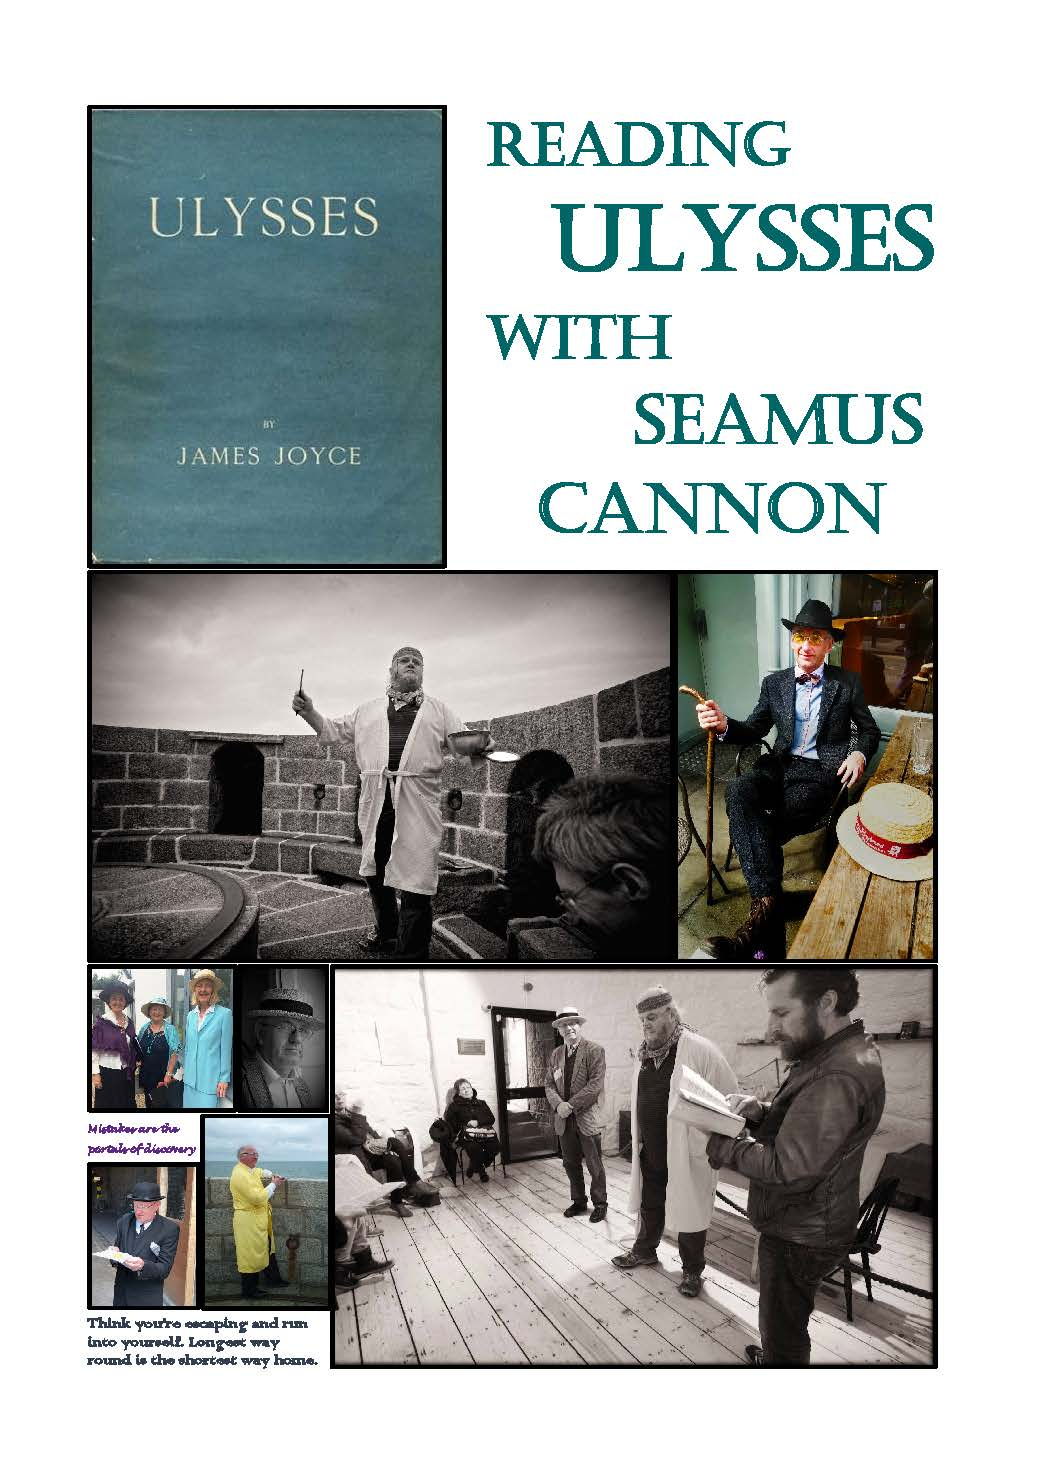 Reading Ulysses with Seamus Cannon poster